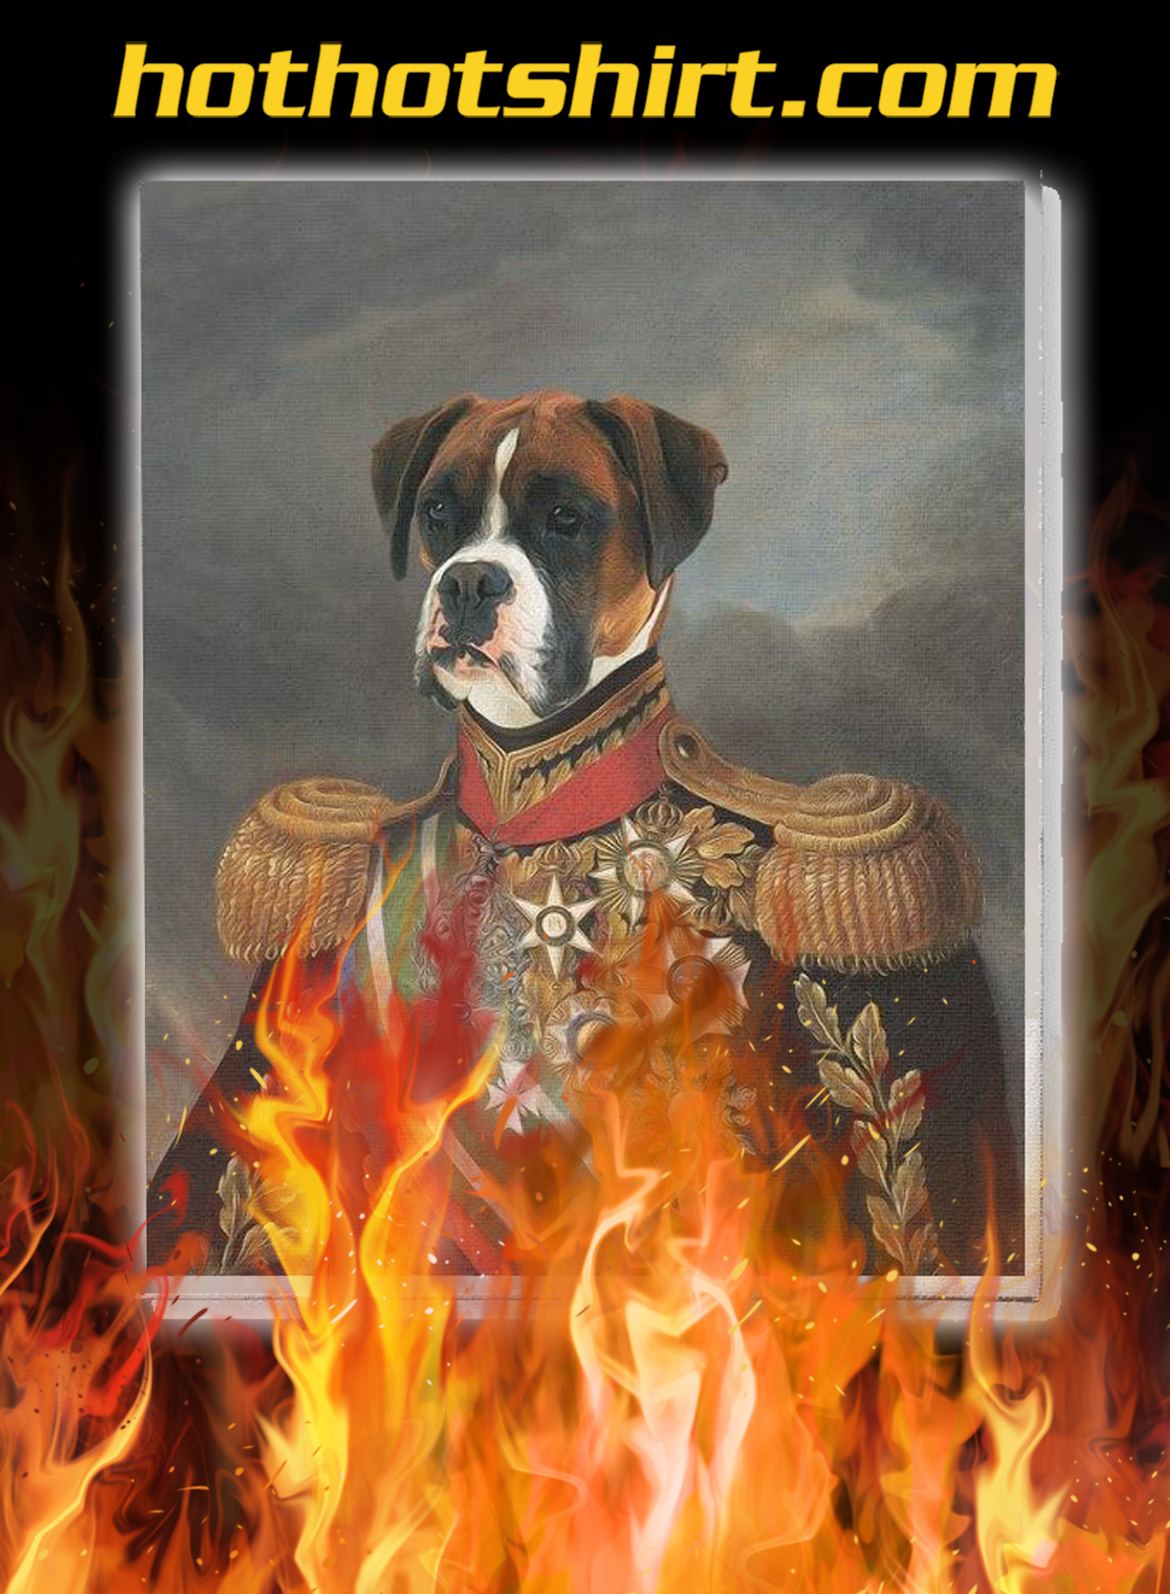 Dog army custom personalized vertical canvas prints - pic 1